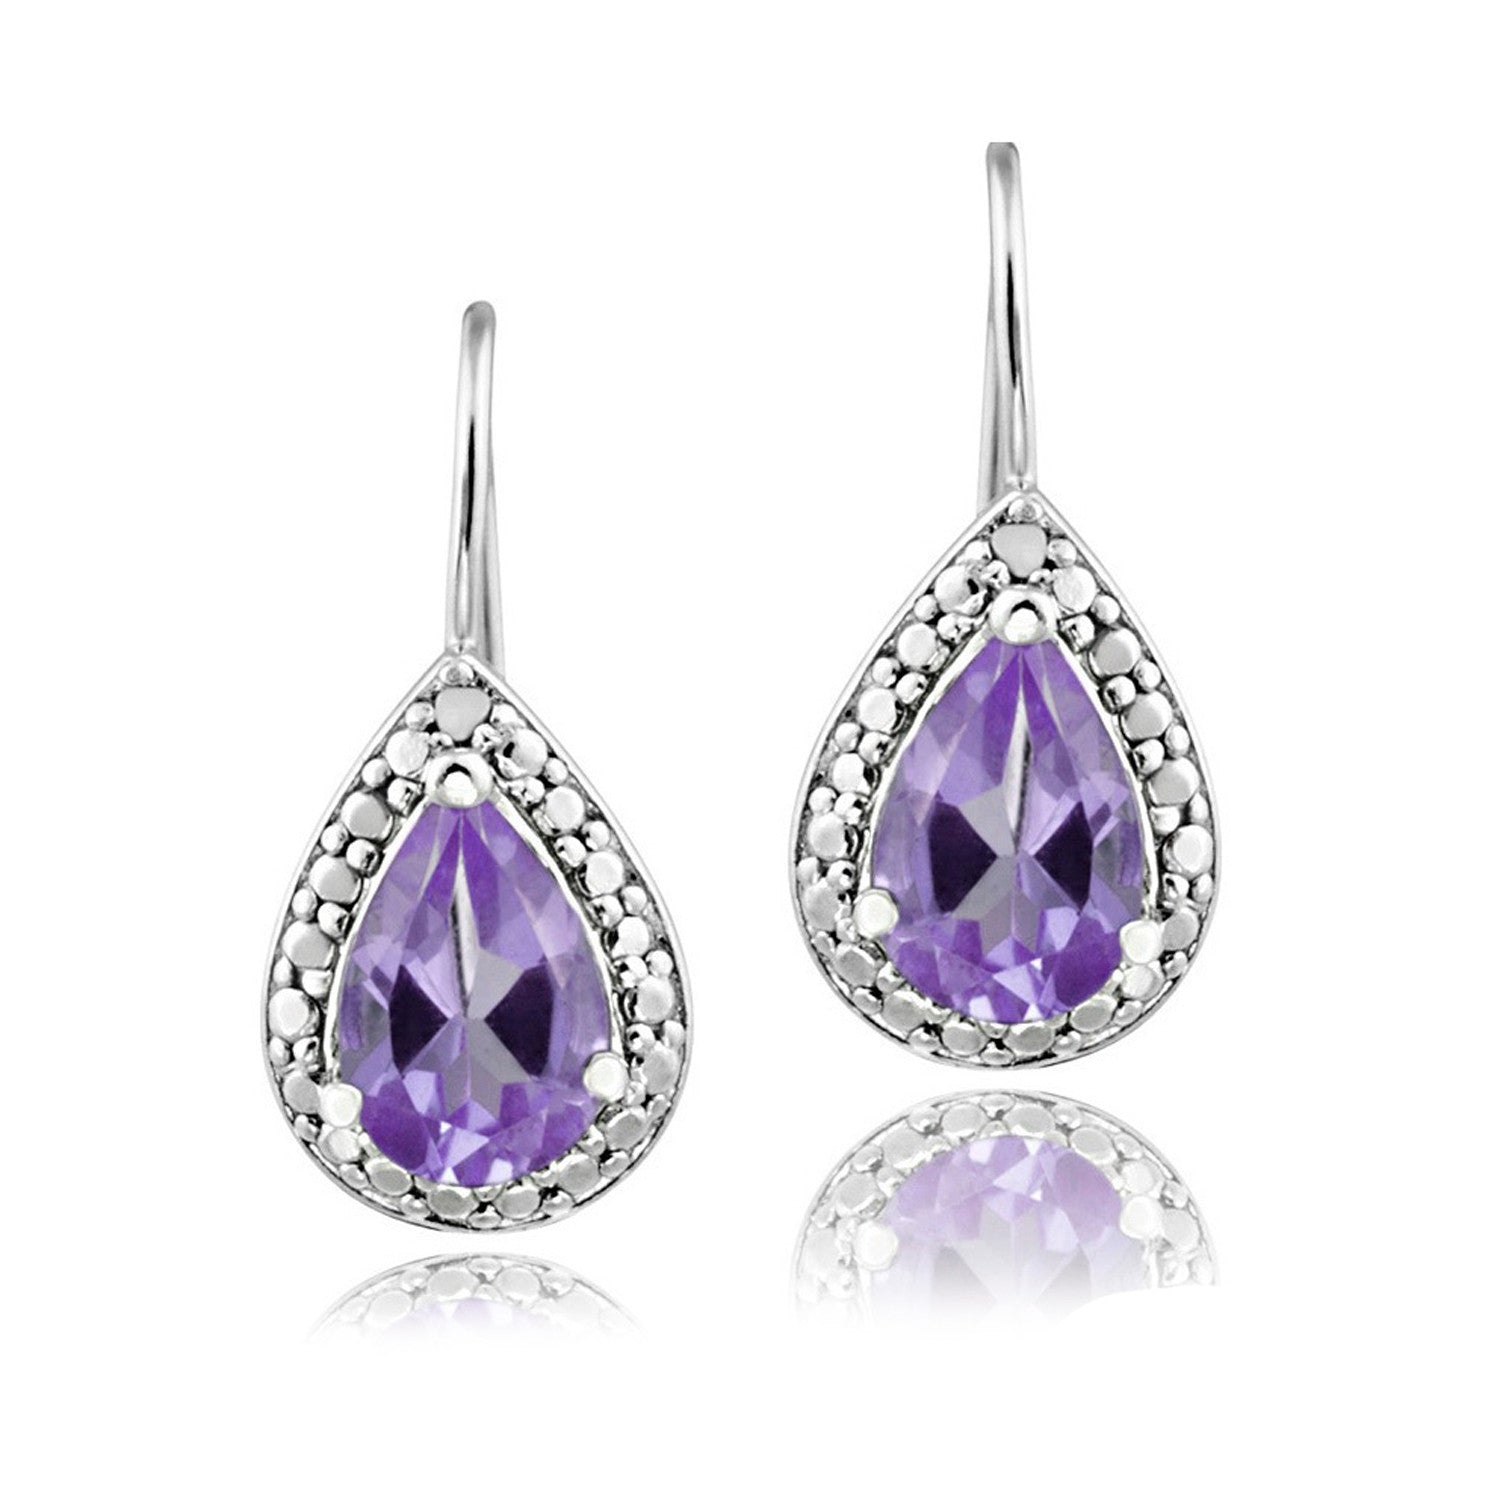 Sterling Silver Diamond & Gemstone Accent Leverback Dangle Earrings - Amethyst